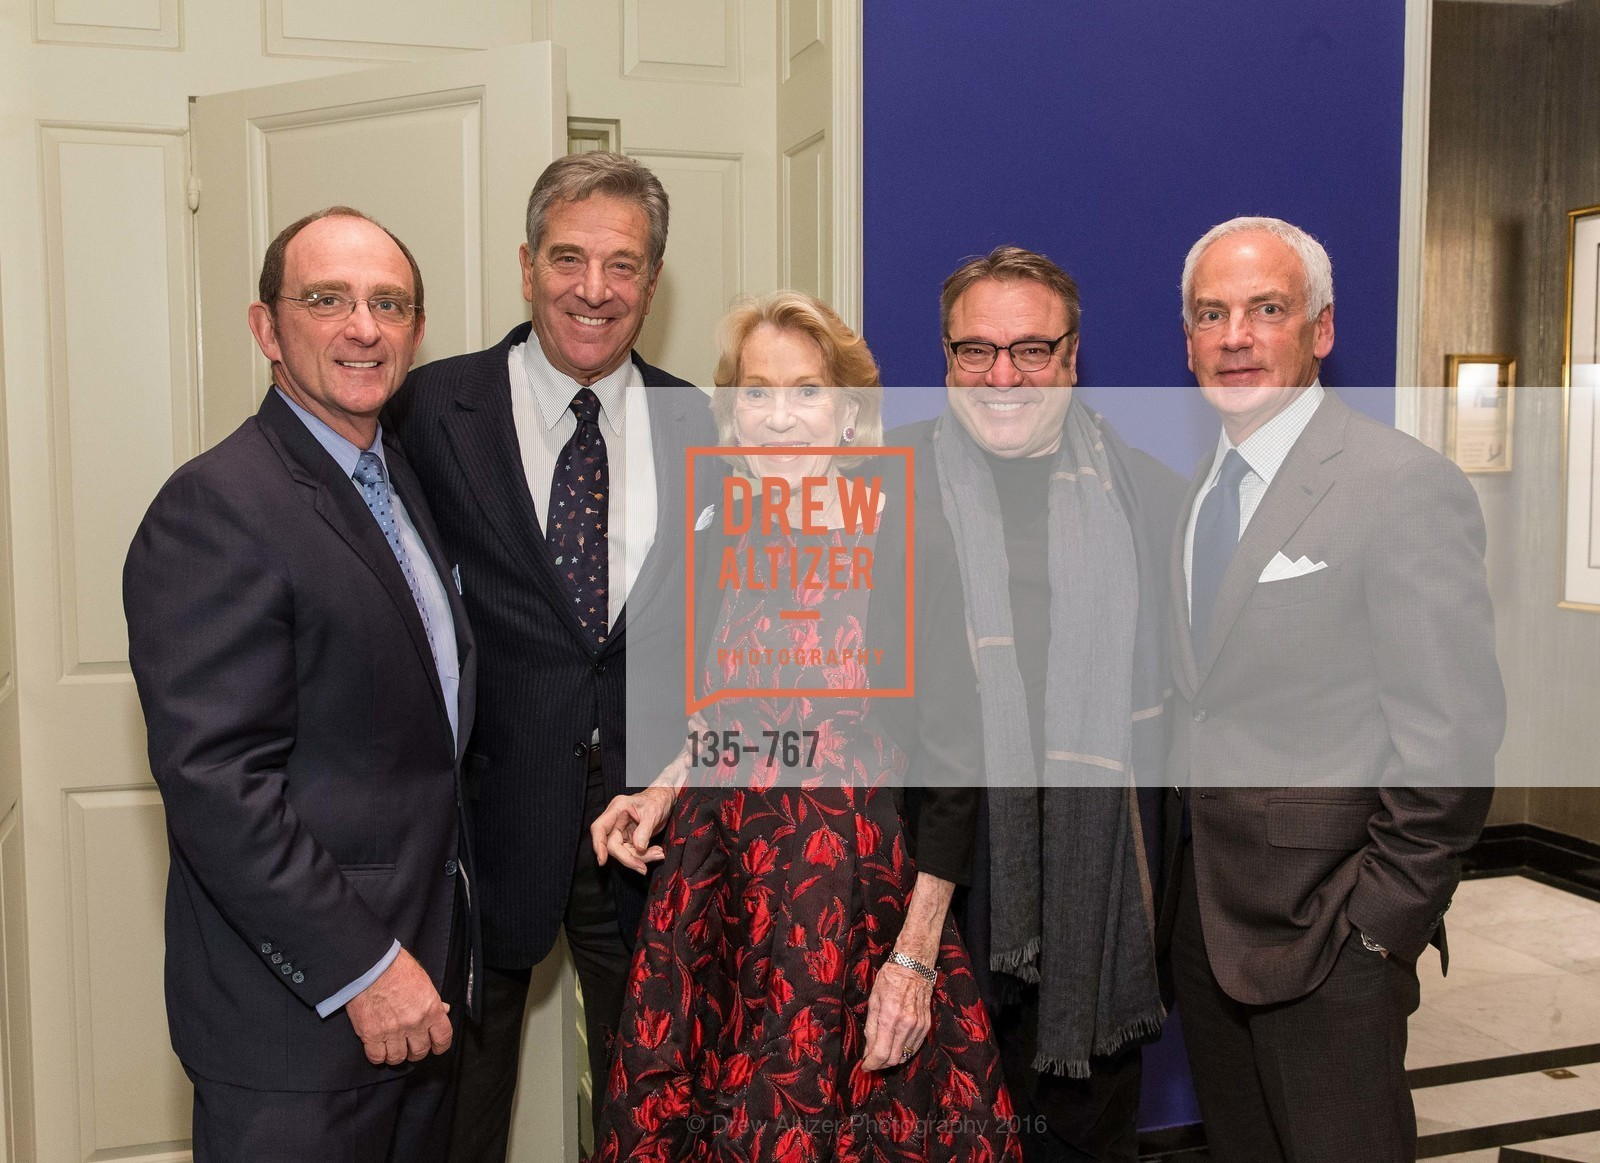 Tom Klein, Paul Pelosi, Charlotte Shultz, Stanlee Gatti, Jeff Farber, A Special Reception with Tony Bennett, The Fairmont, San Francisco, The Penthouse Suite, January 26th, 2016,Drew Altizer, Drew Altizer Photography, full-service agency, private events, San Francisco photographer, photographer california